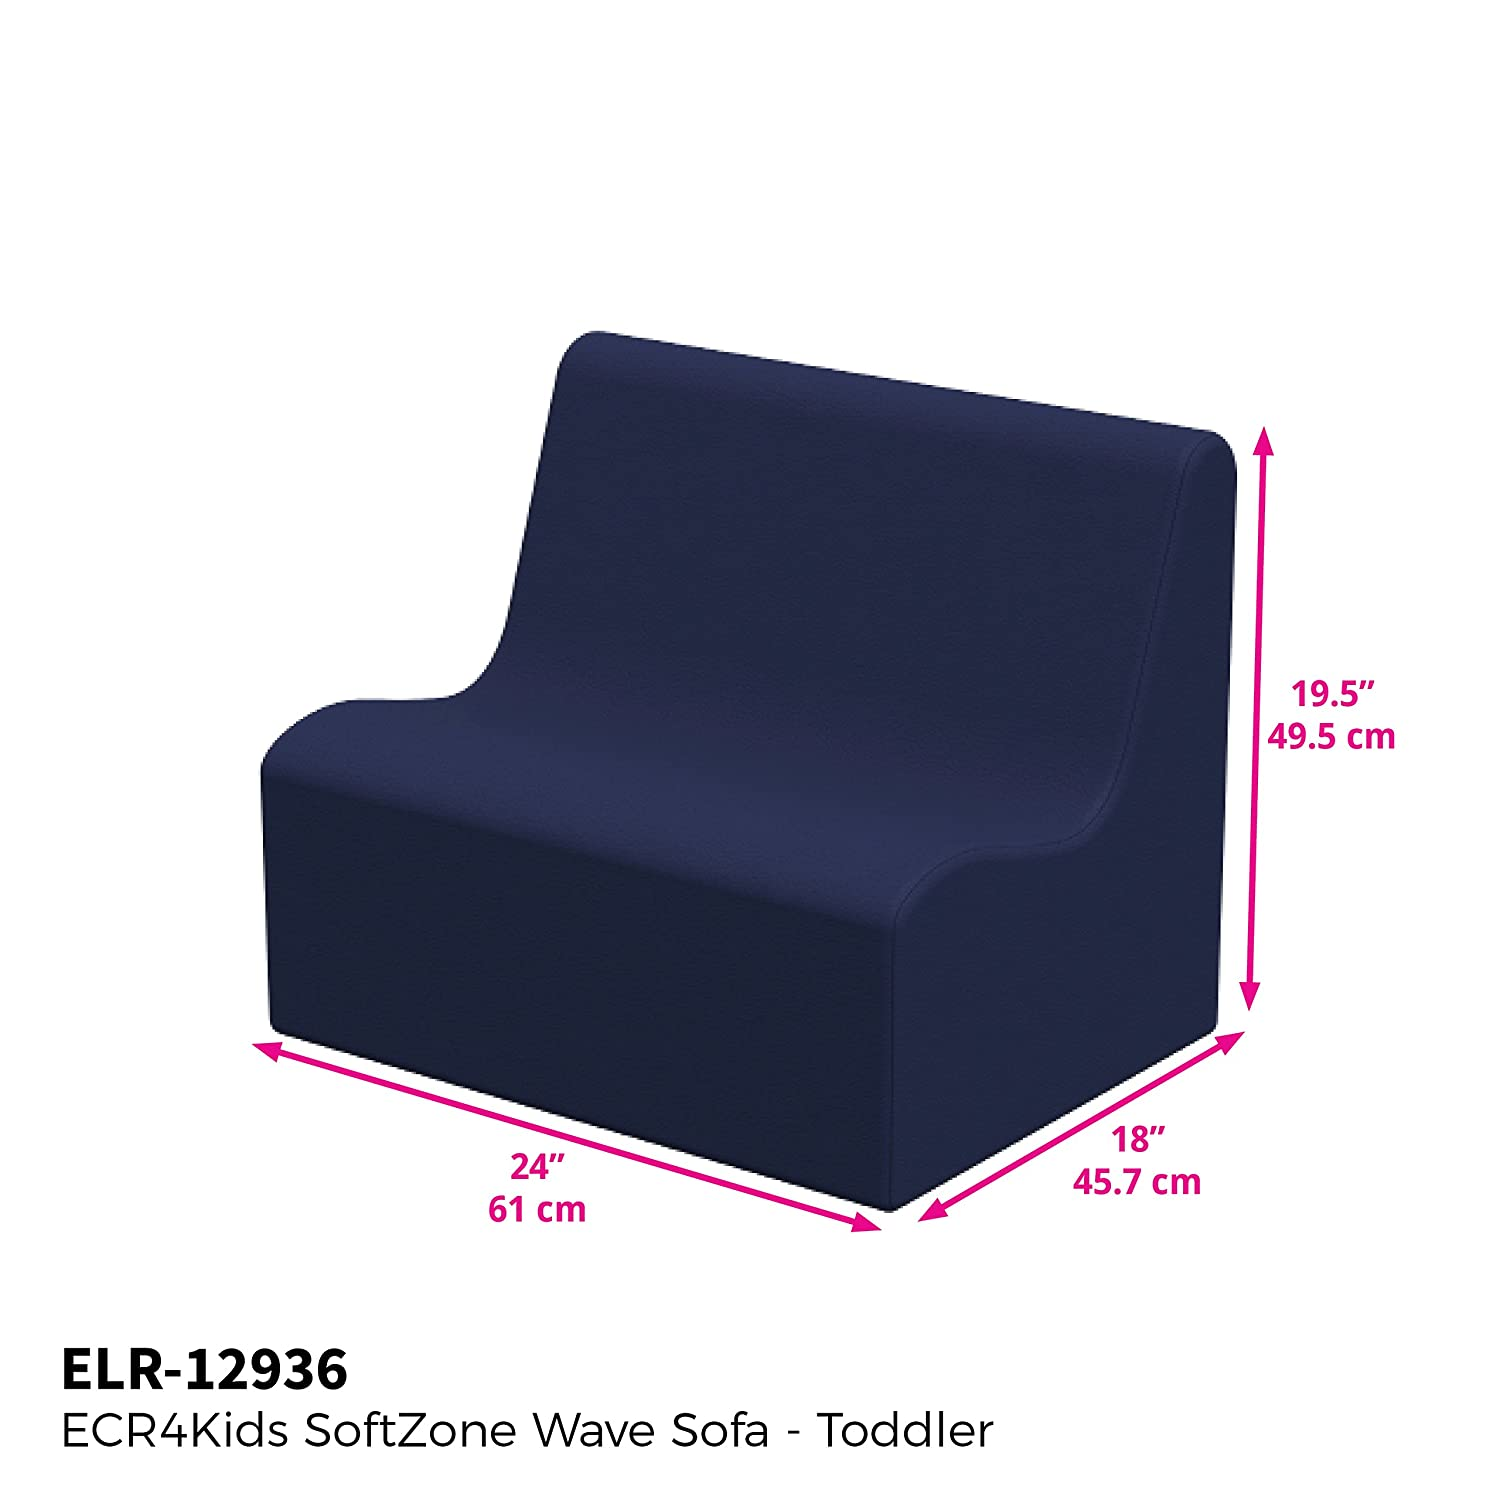 Set of 2 Soft Foam Seating for Kids//Toddlers//Teens Emerald ECR4Kids SoftZone Wave Chairs Pre-School